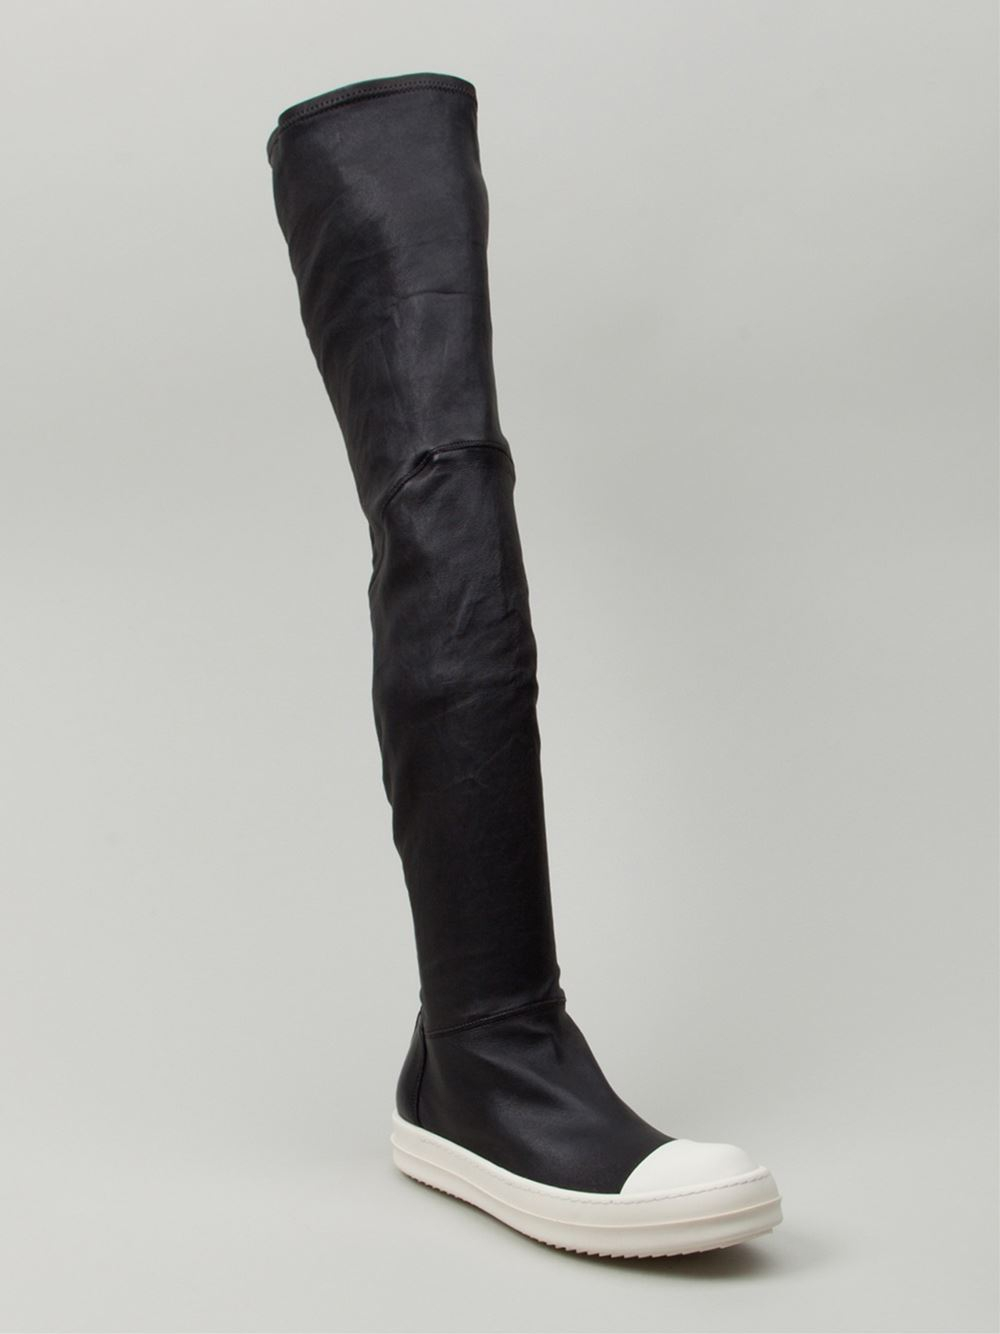 Rick Owens Thigh High Sneaker Boots in